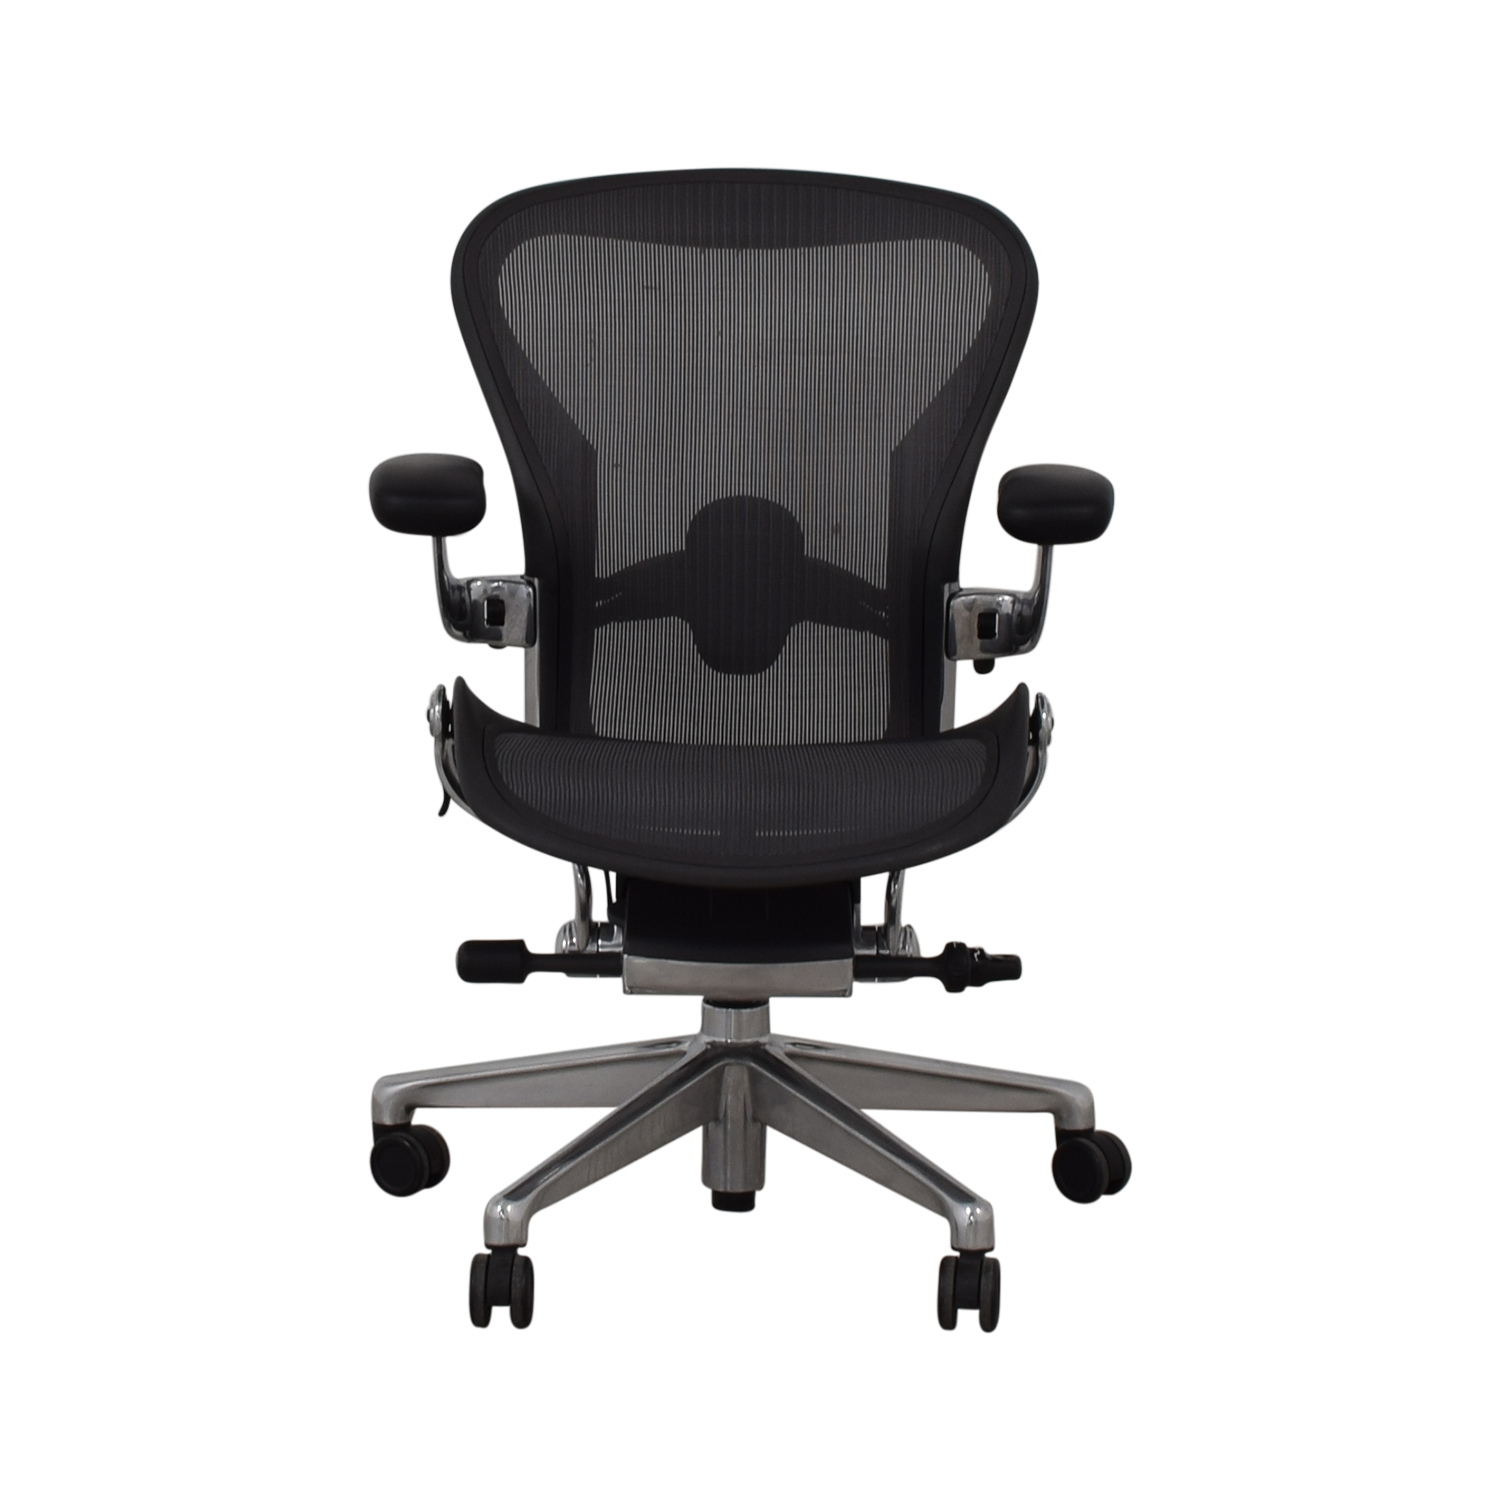 Herman Miller Aeron Size B Black Office Desk Chair / Chairs